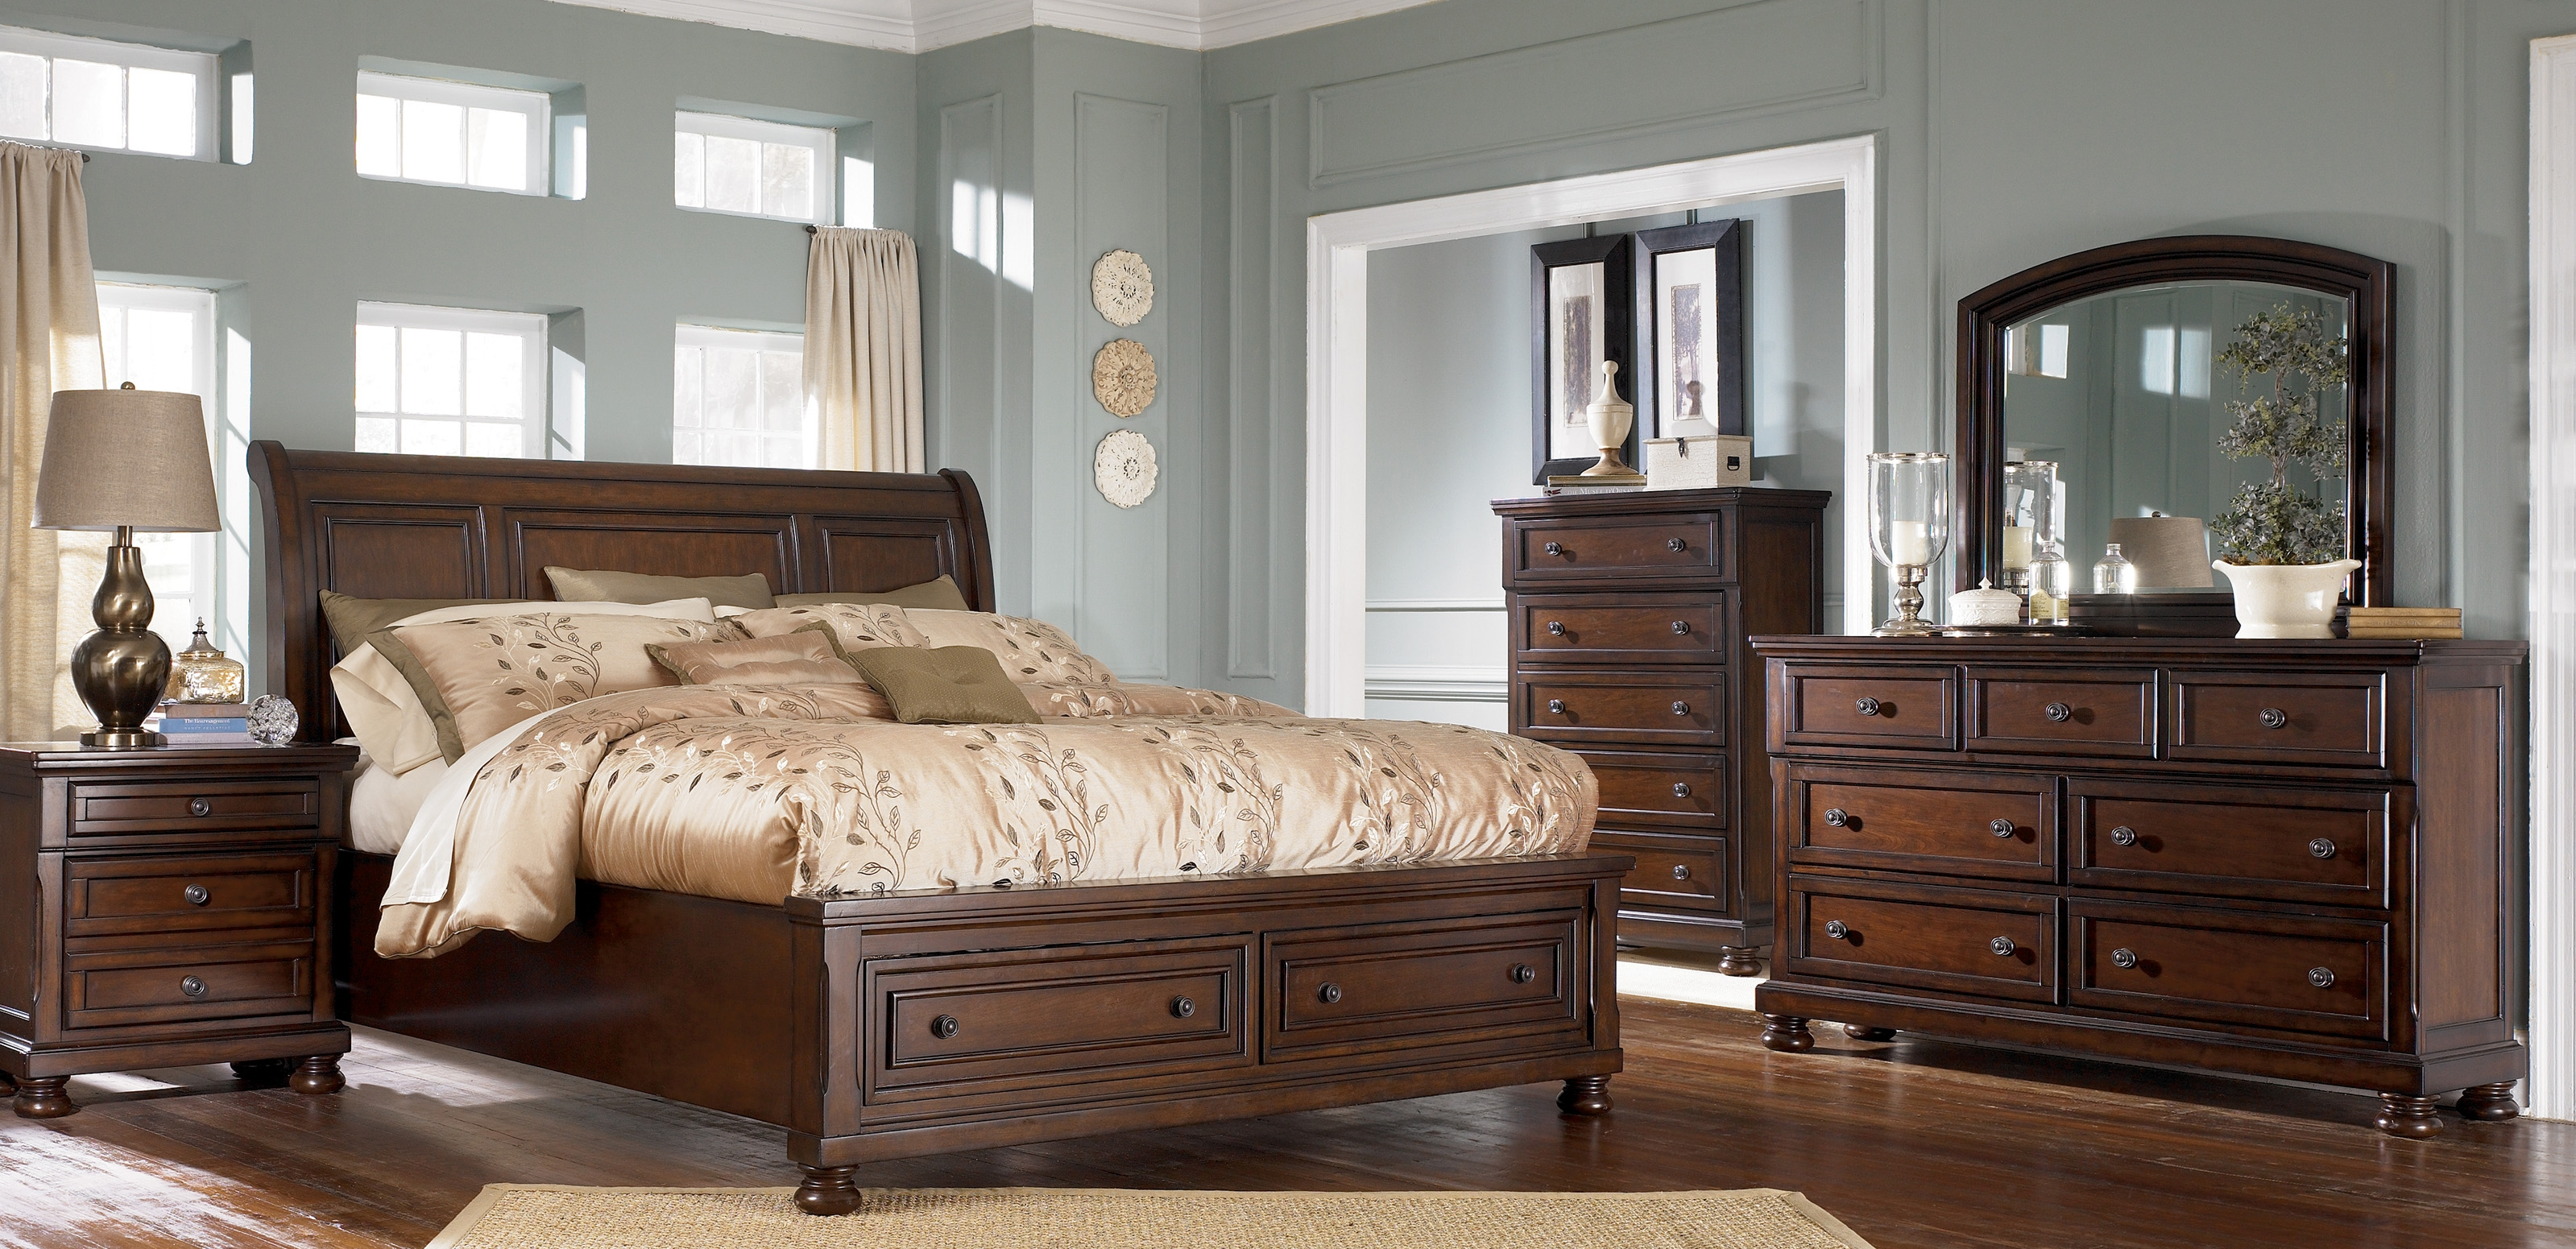 photo of a beautifully furnished bedroom